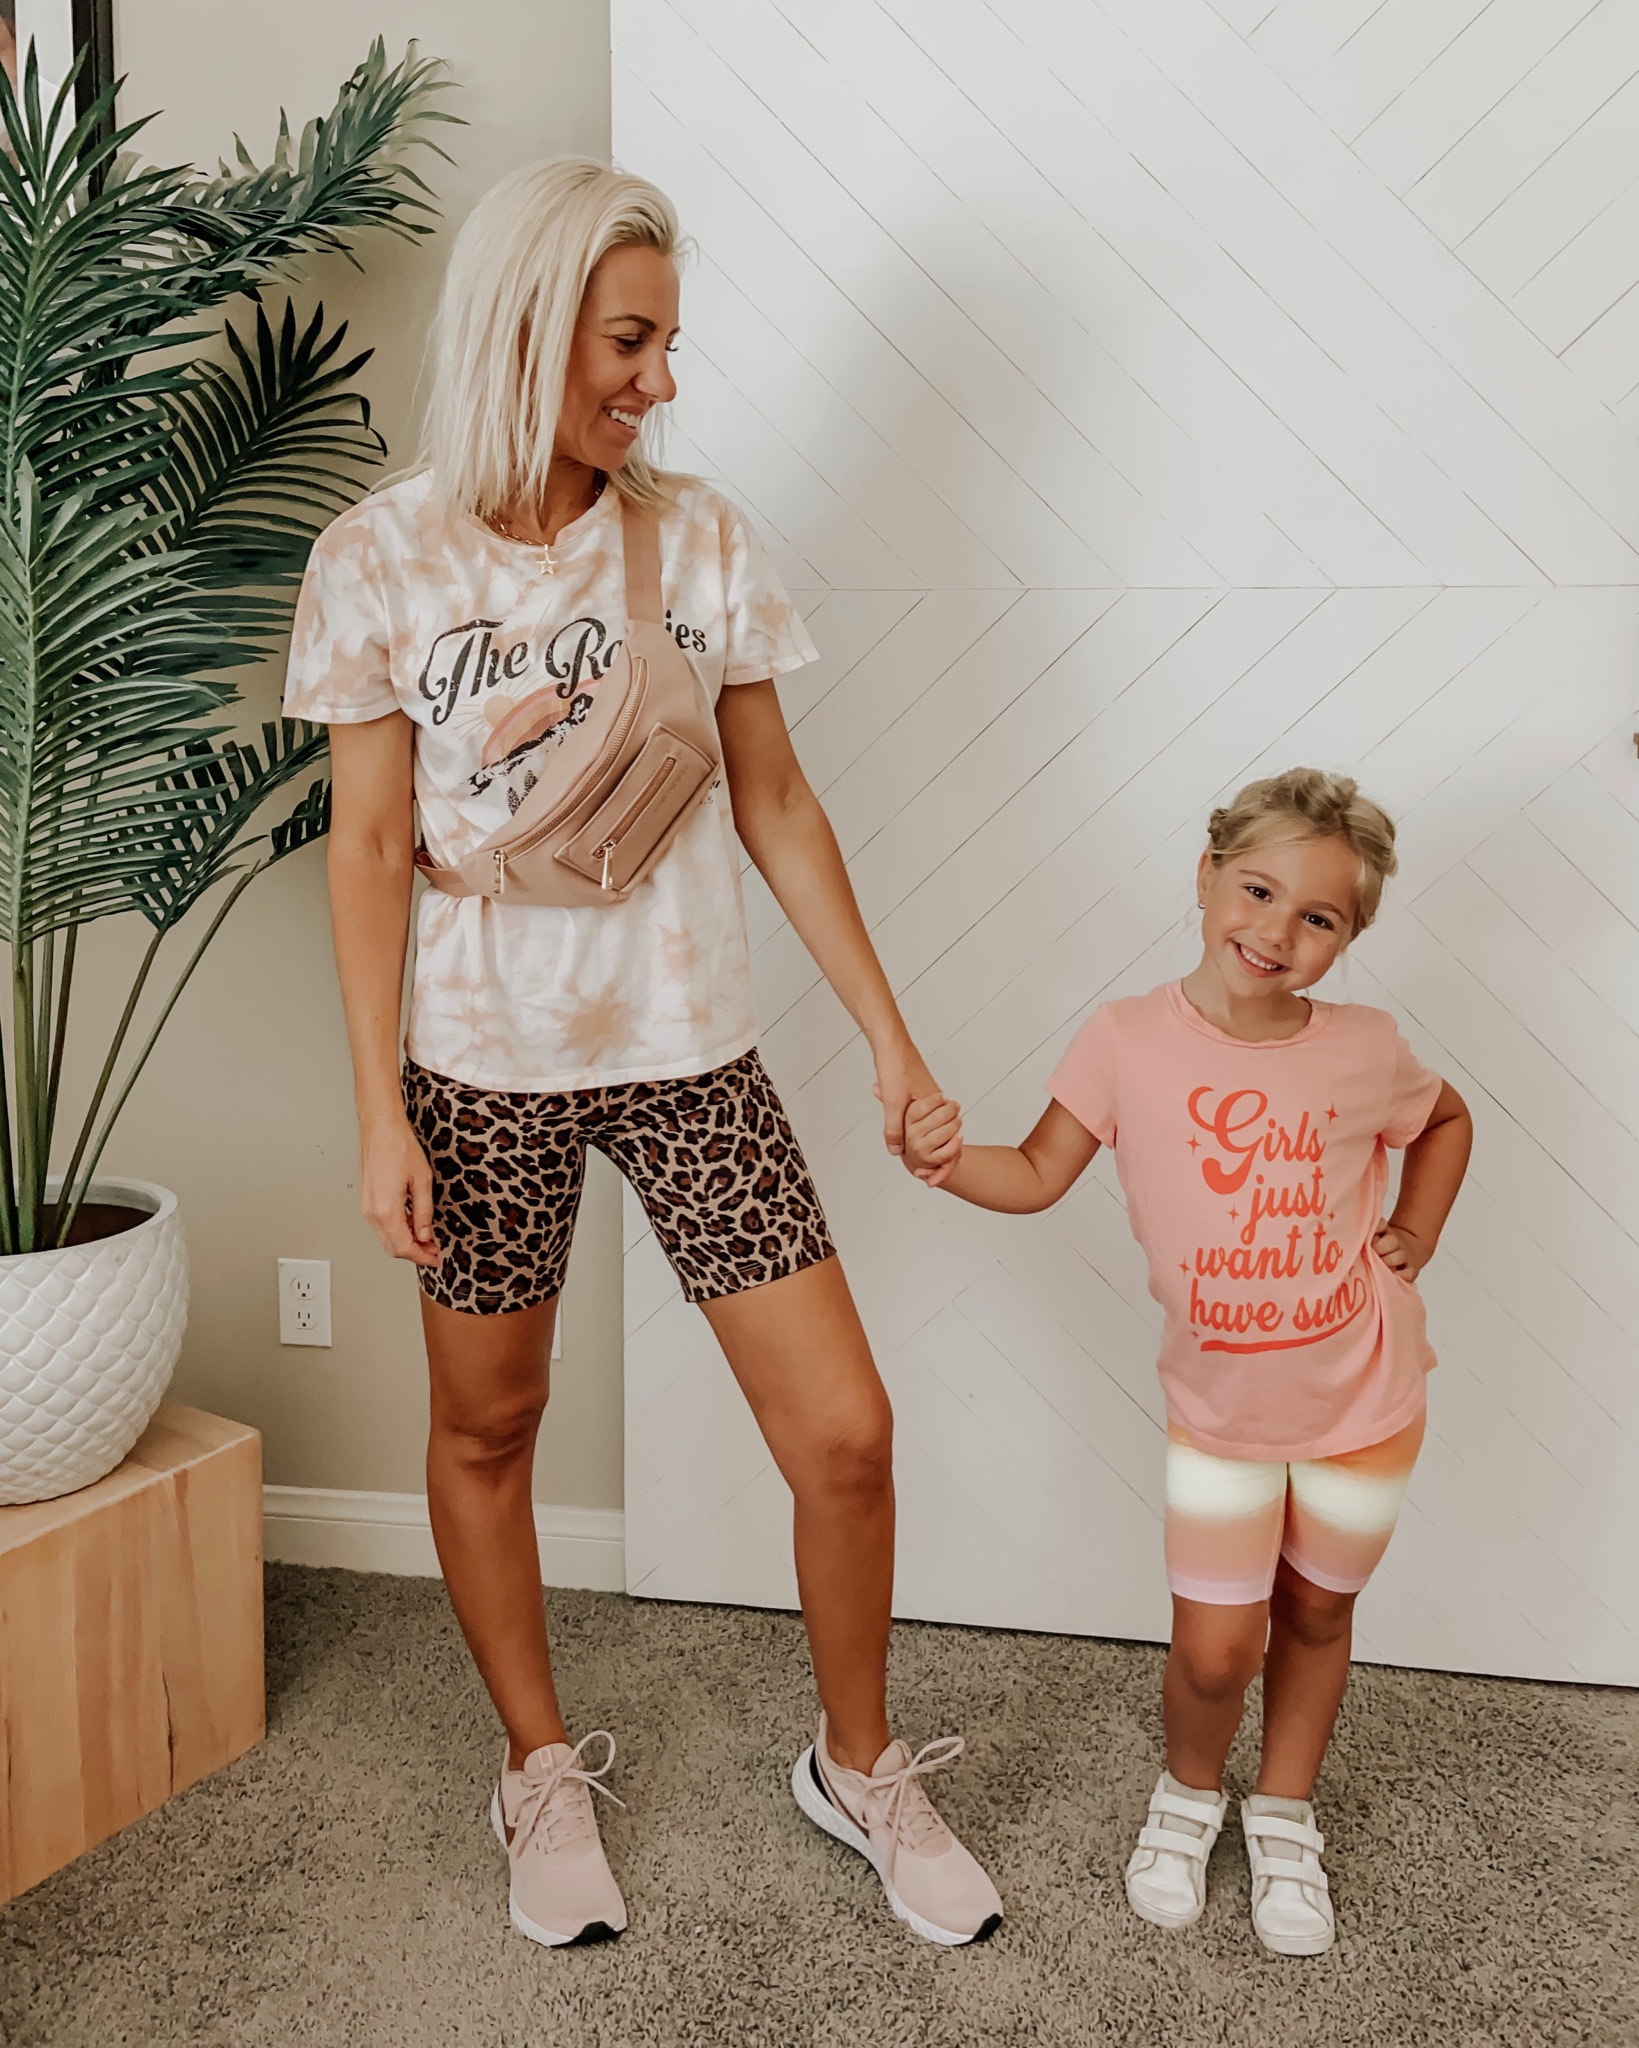 TIE DYE + LEOPARD- Jaclyn De Leon Style + sharing several ways to pattern mix with leopard and tie dye from comfy casual to all dressed up. Style tips included